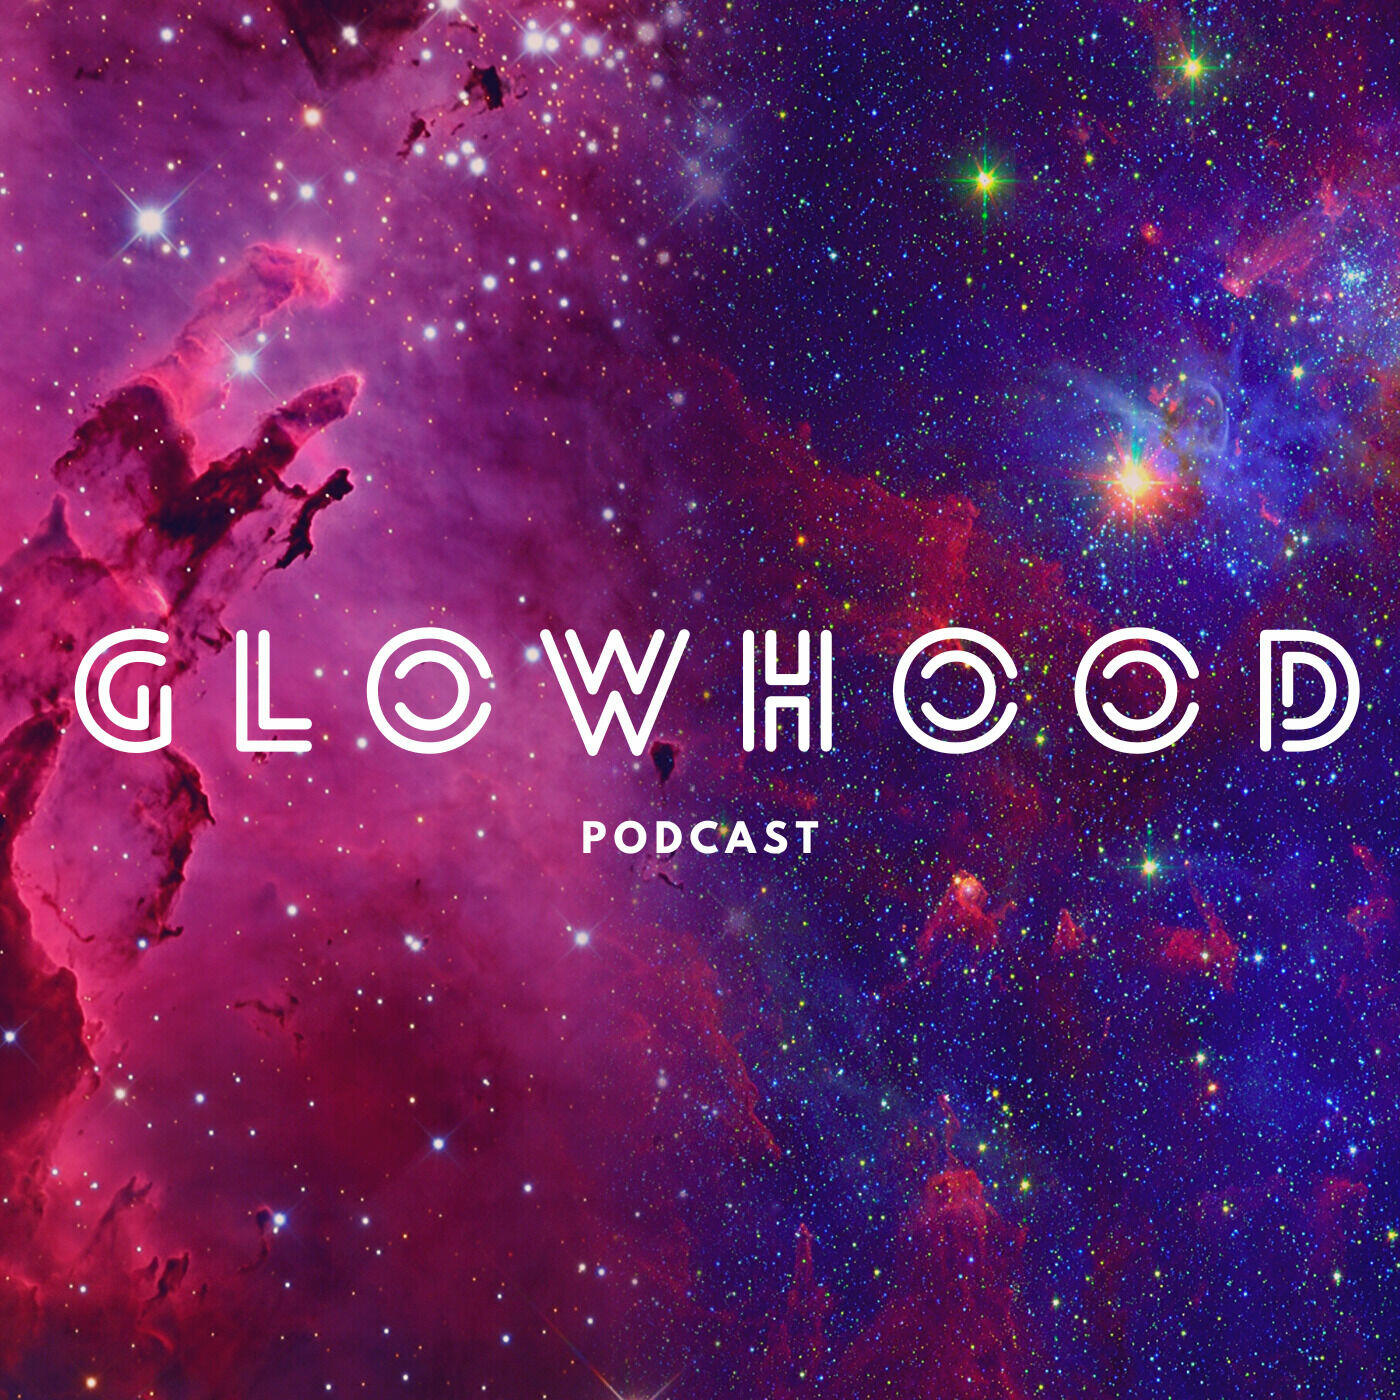 Glowhood Podcast